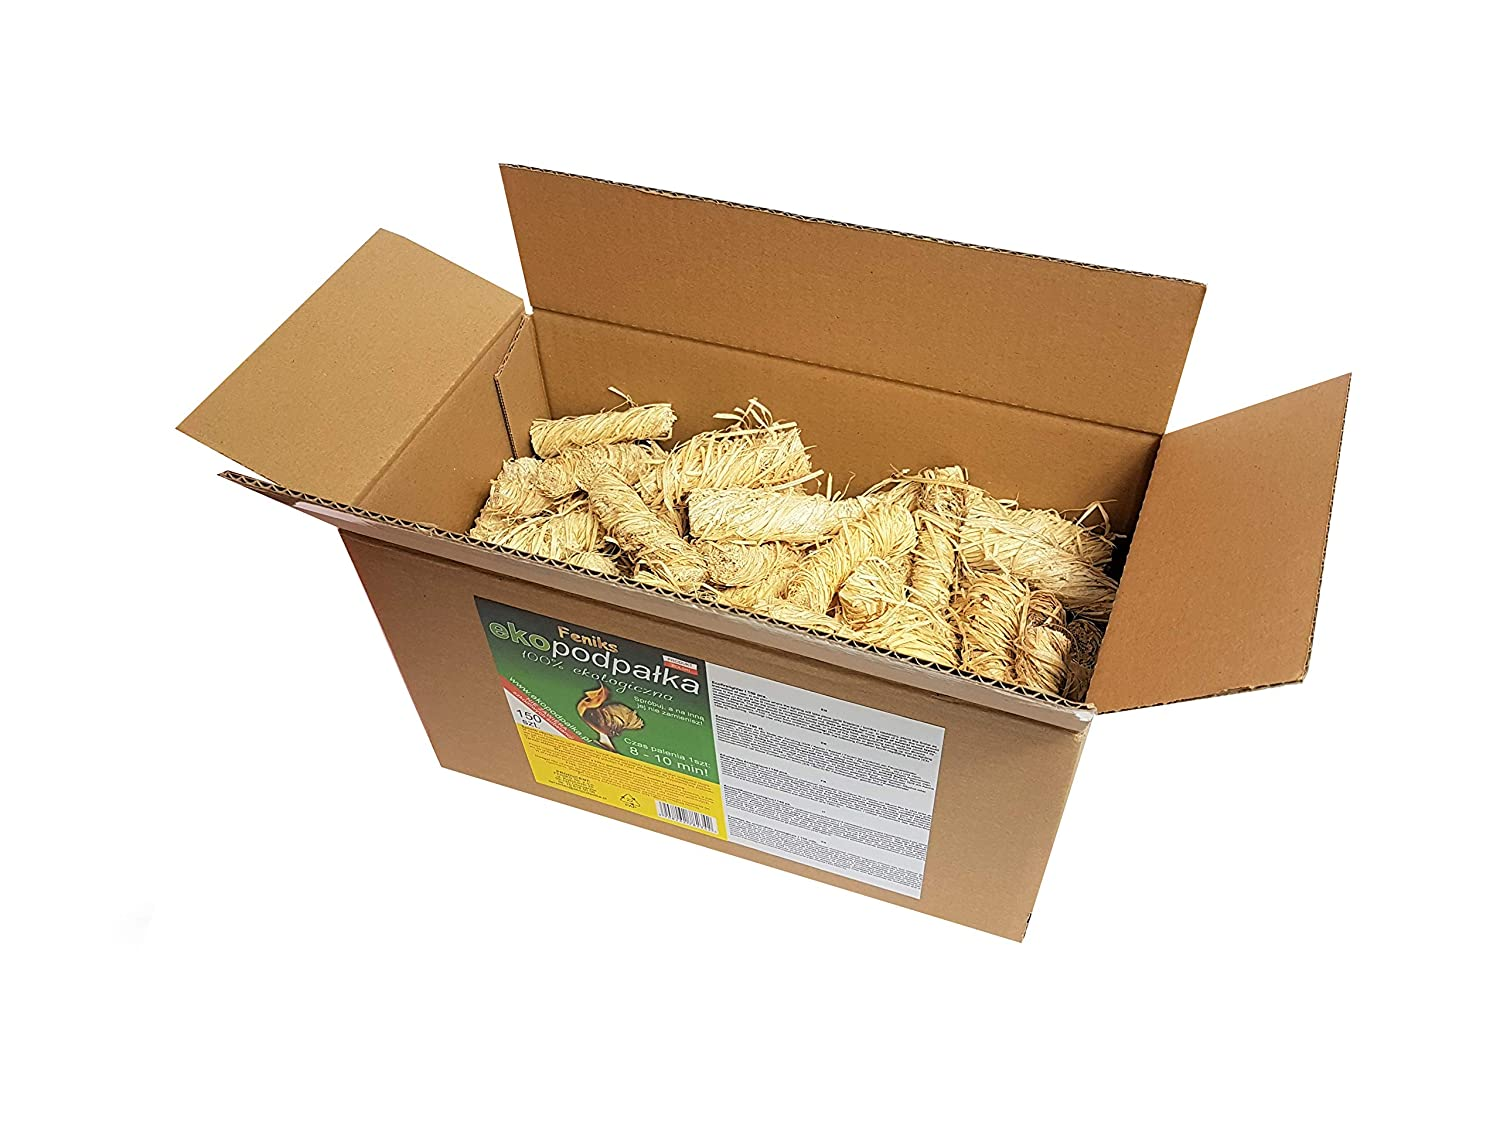 Feniks Firelighters 50+5pcs. for free = 55pcs. in the box, For Fireplace, Stoves, Barbecues and Campfires … Barbecues and Campfires ... Feniks Sp. z o.o.